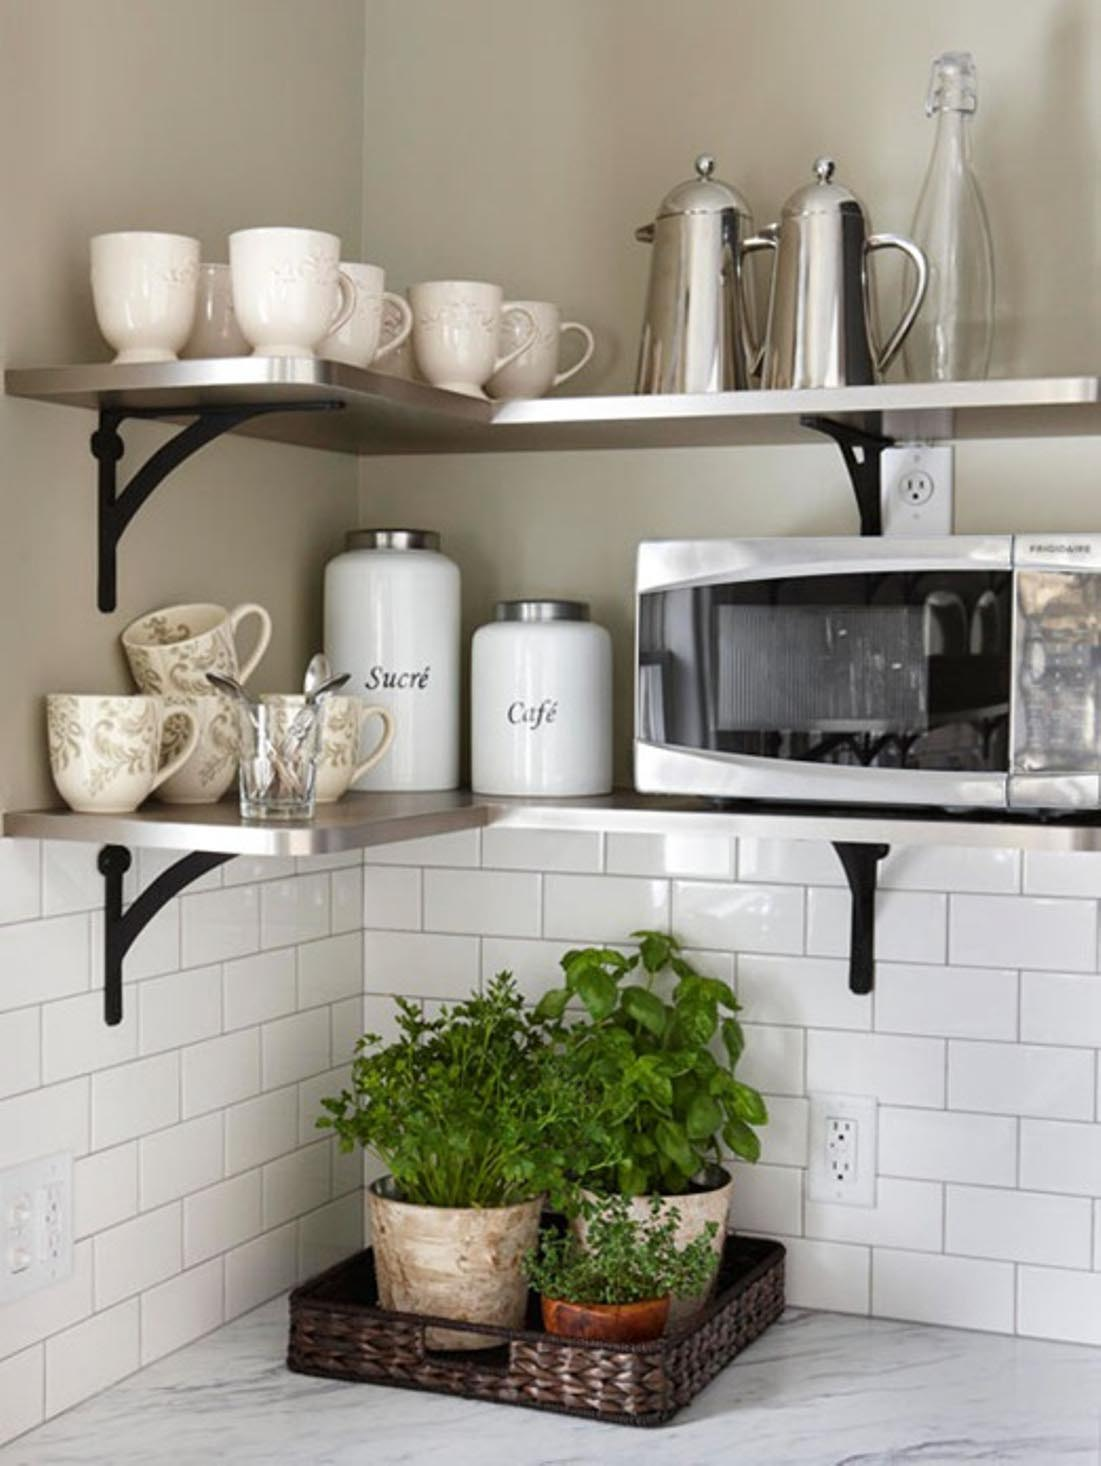 Wall Shelves for Kitchen Storage